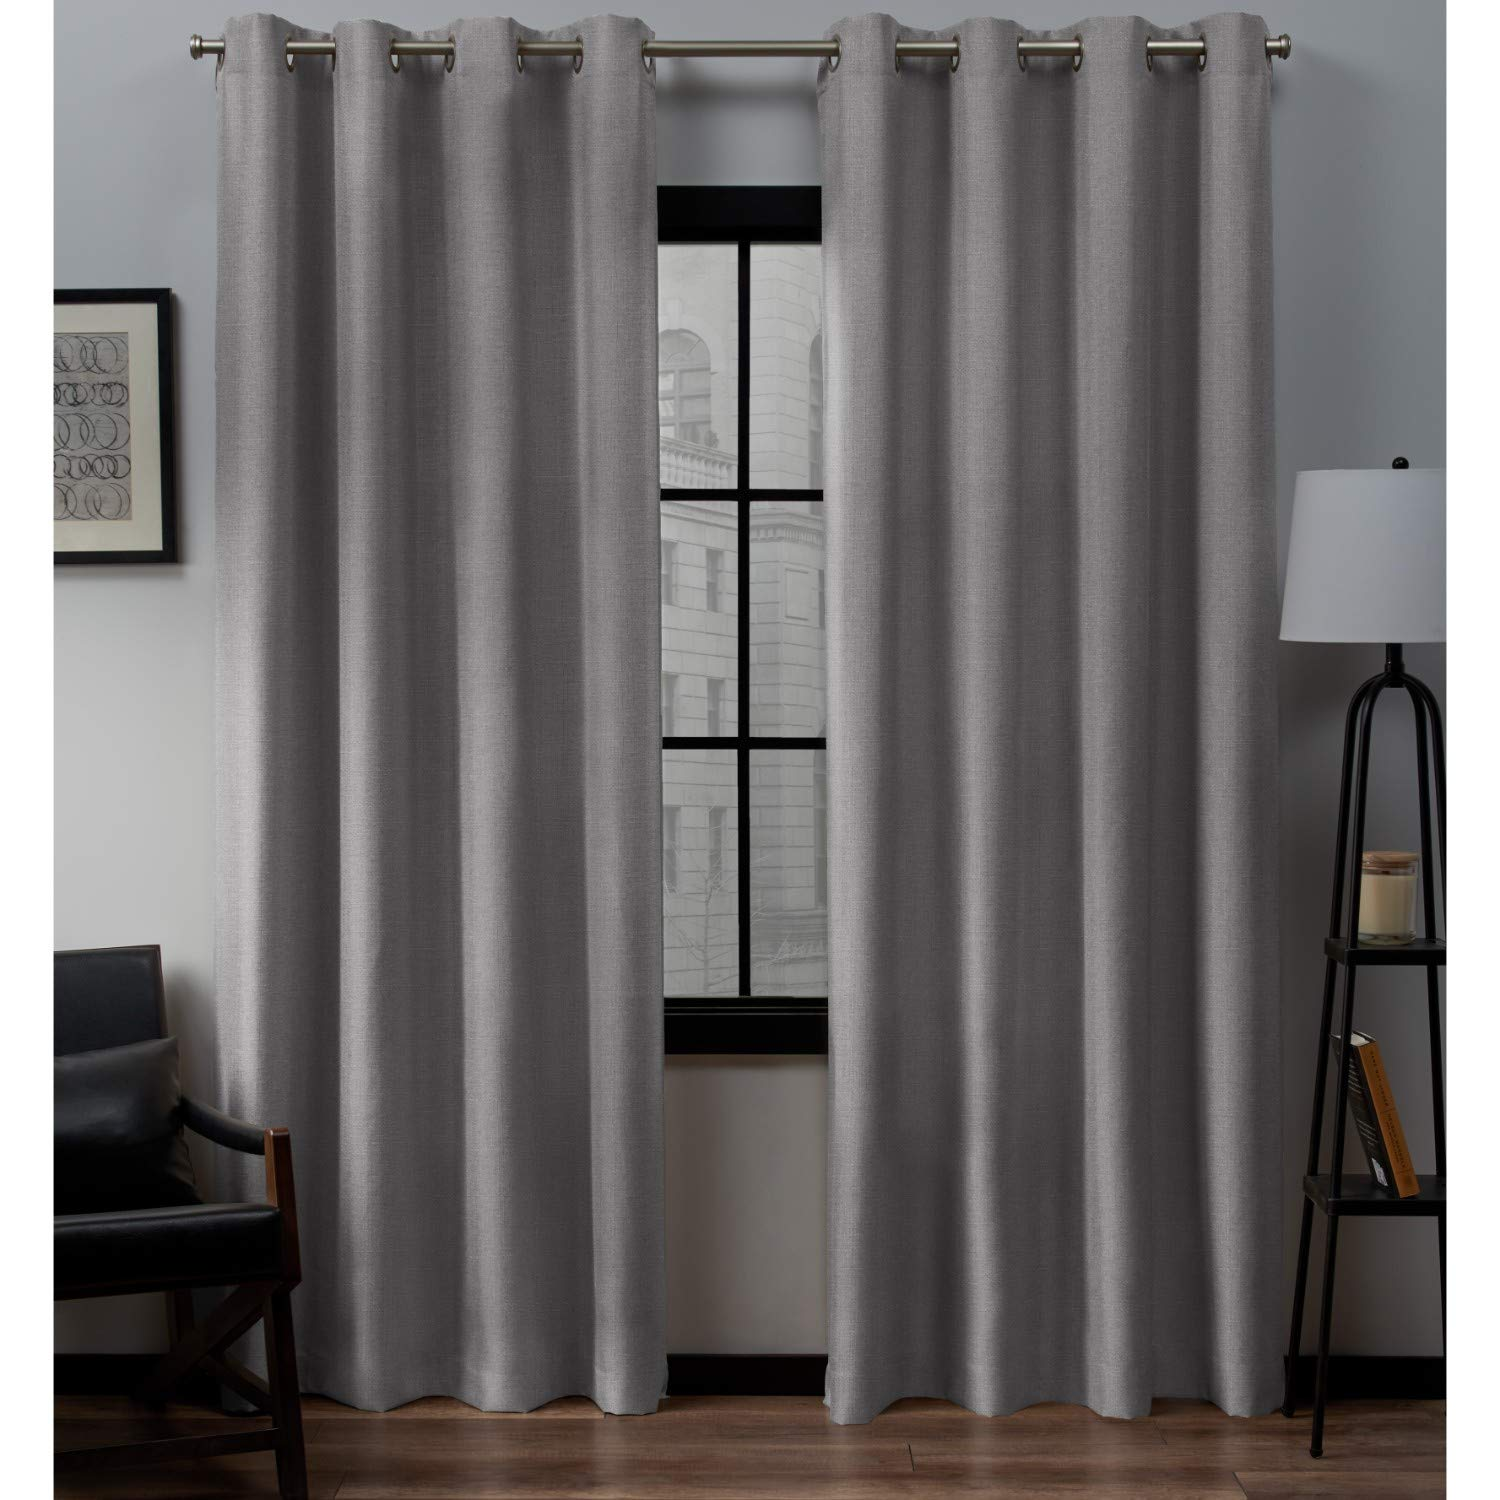 Exclusive Home Curtains Loha Linen Grommet Top Curtain Panel Pair, 54x108, Dove Grey